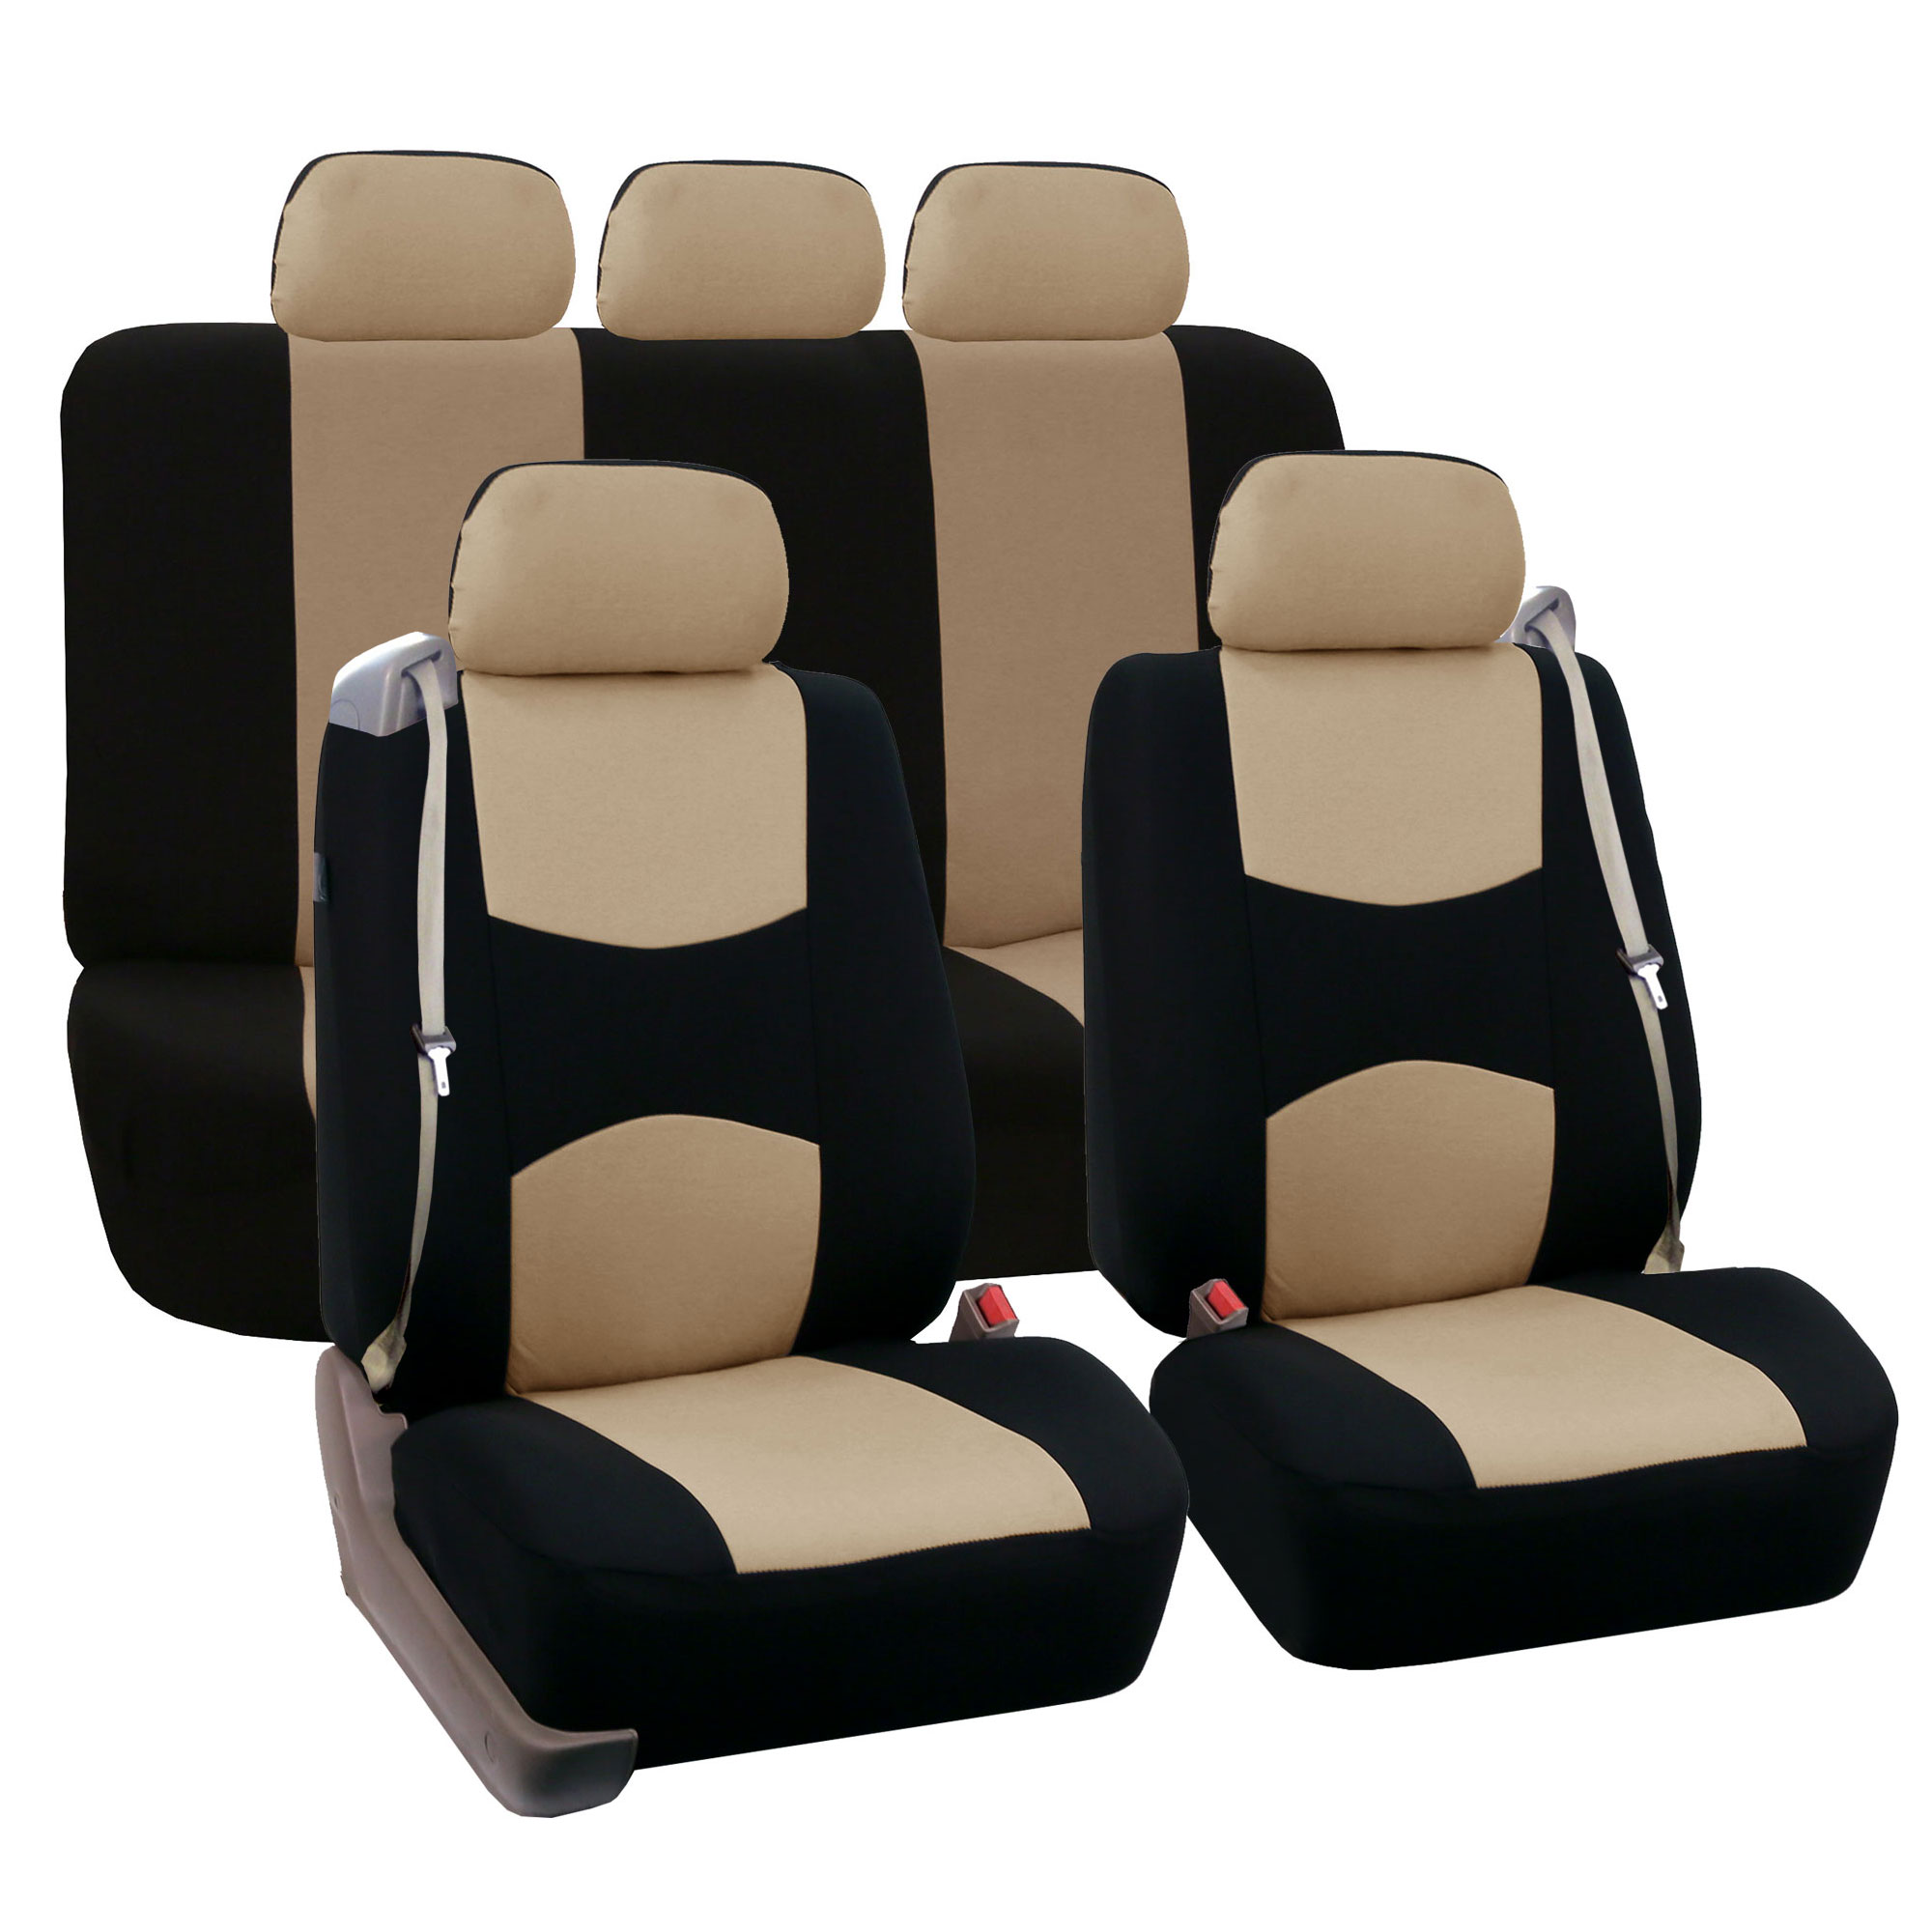 chair covers for headrest muuto nerd replica car seat cover full set integrated seatbelt 5